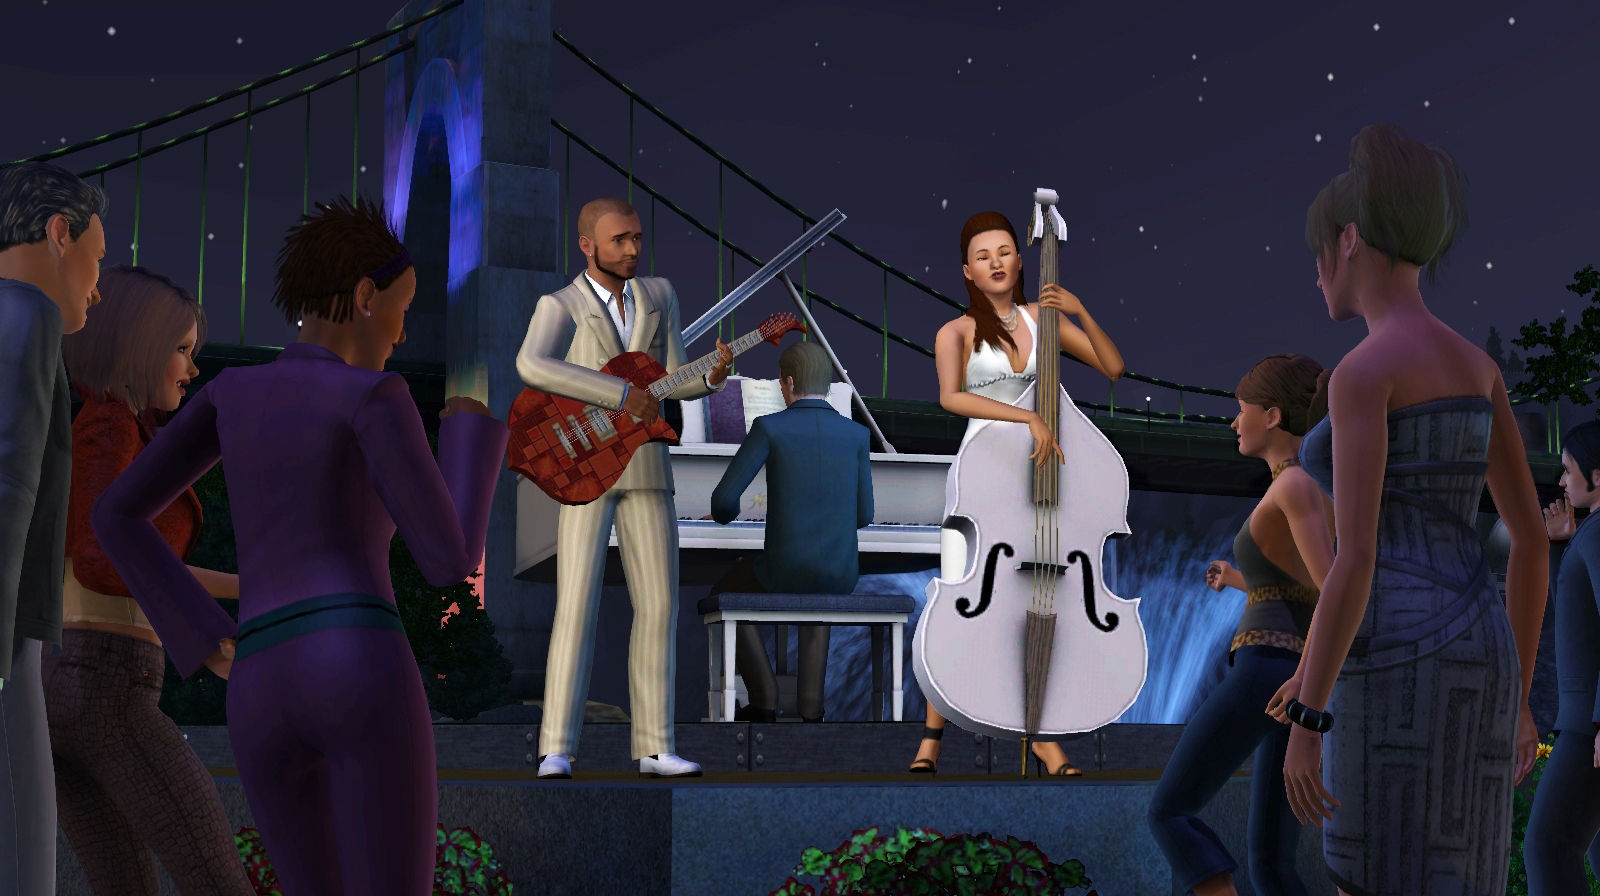 A Guide to The Sims 3 Late Night Film Career Track. Learn the best traits for an actor or director and see uniforms.